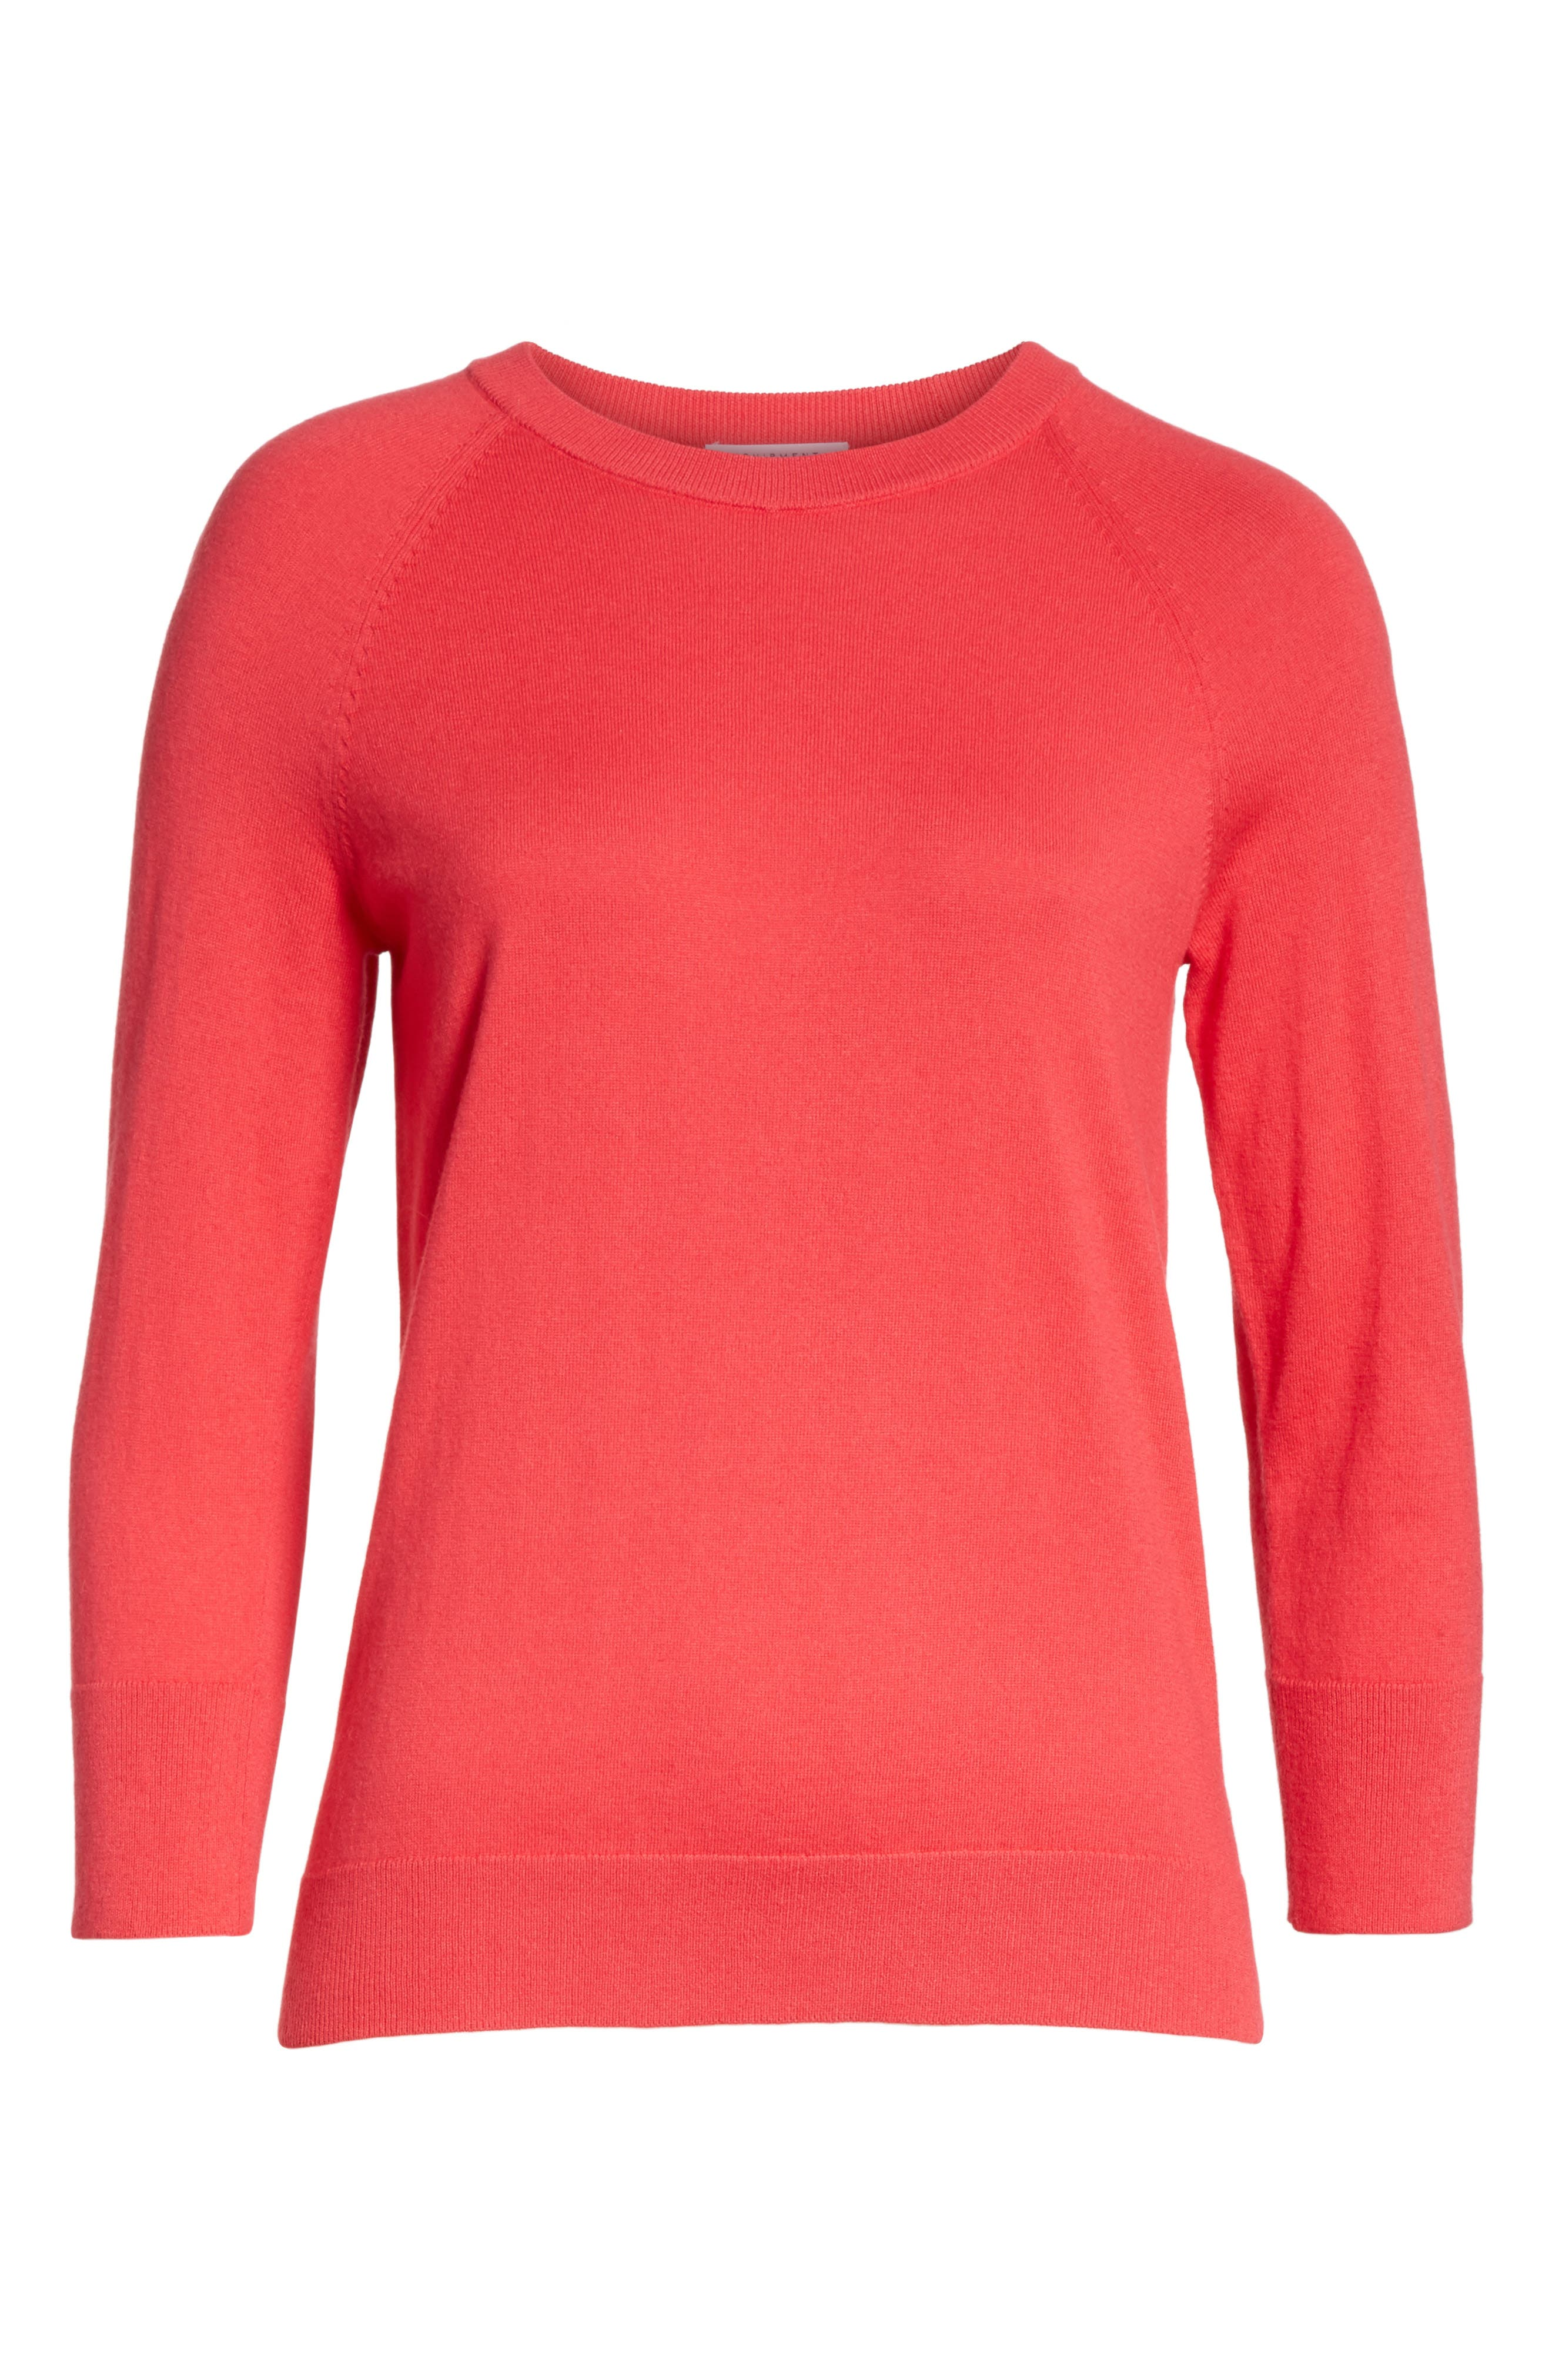 Cotton & Cashmere Sweater,                             Alternate thumbnail 6, color,                             Charged Pink